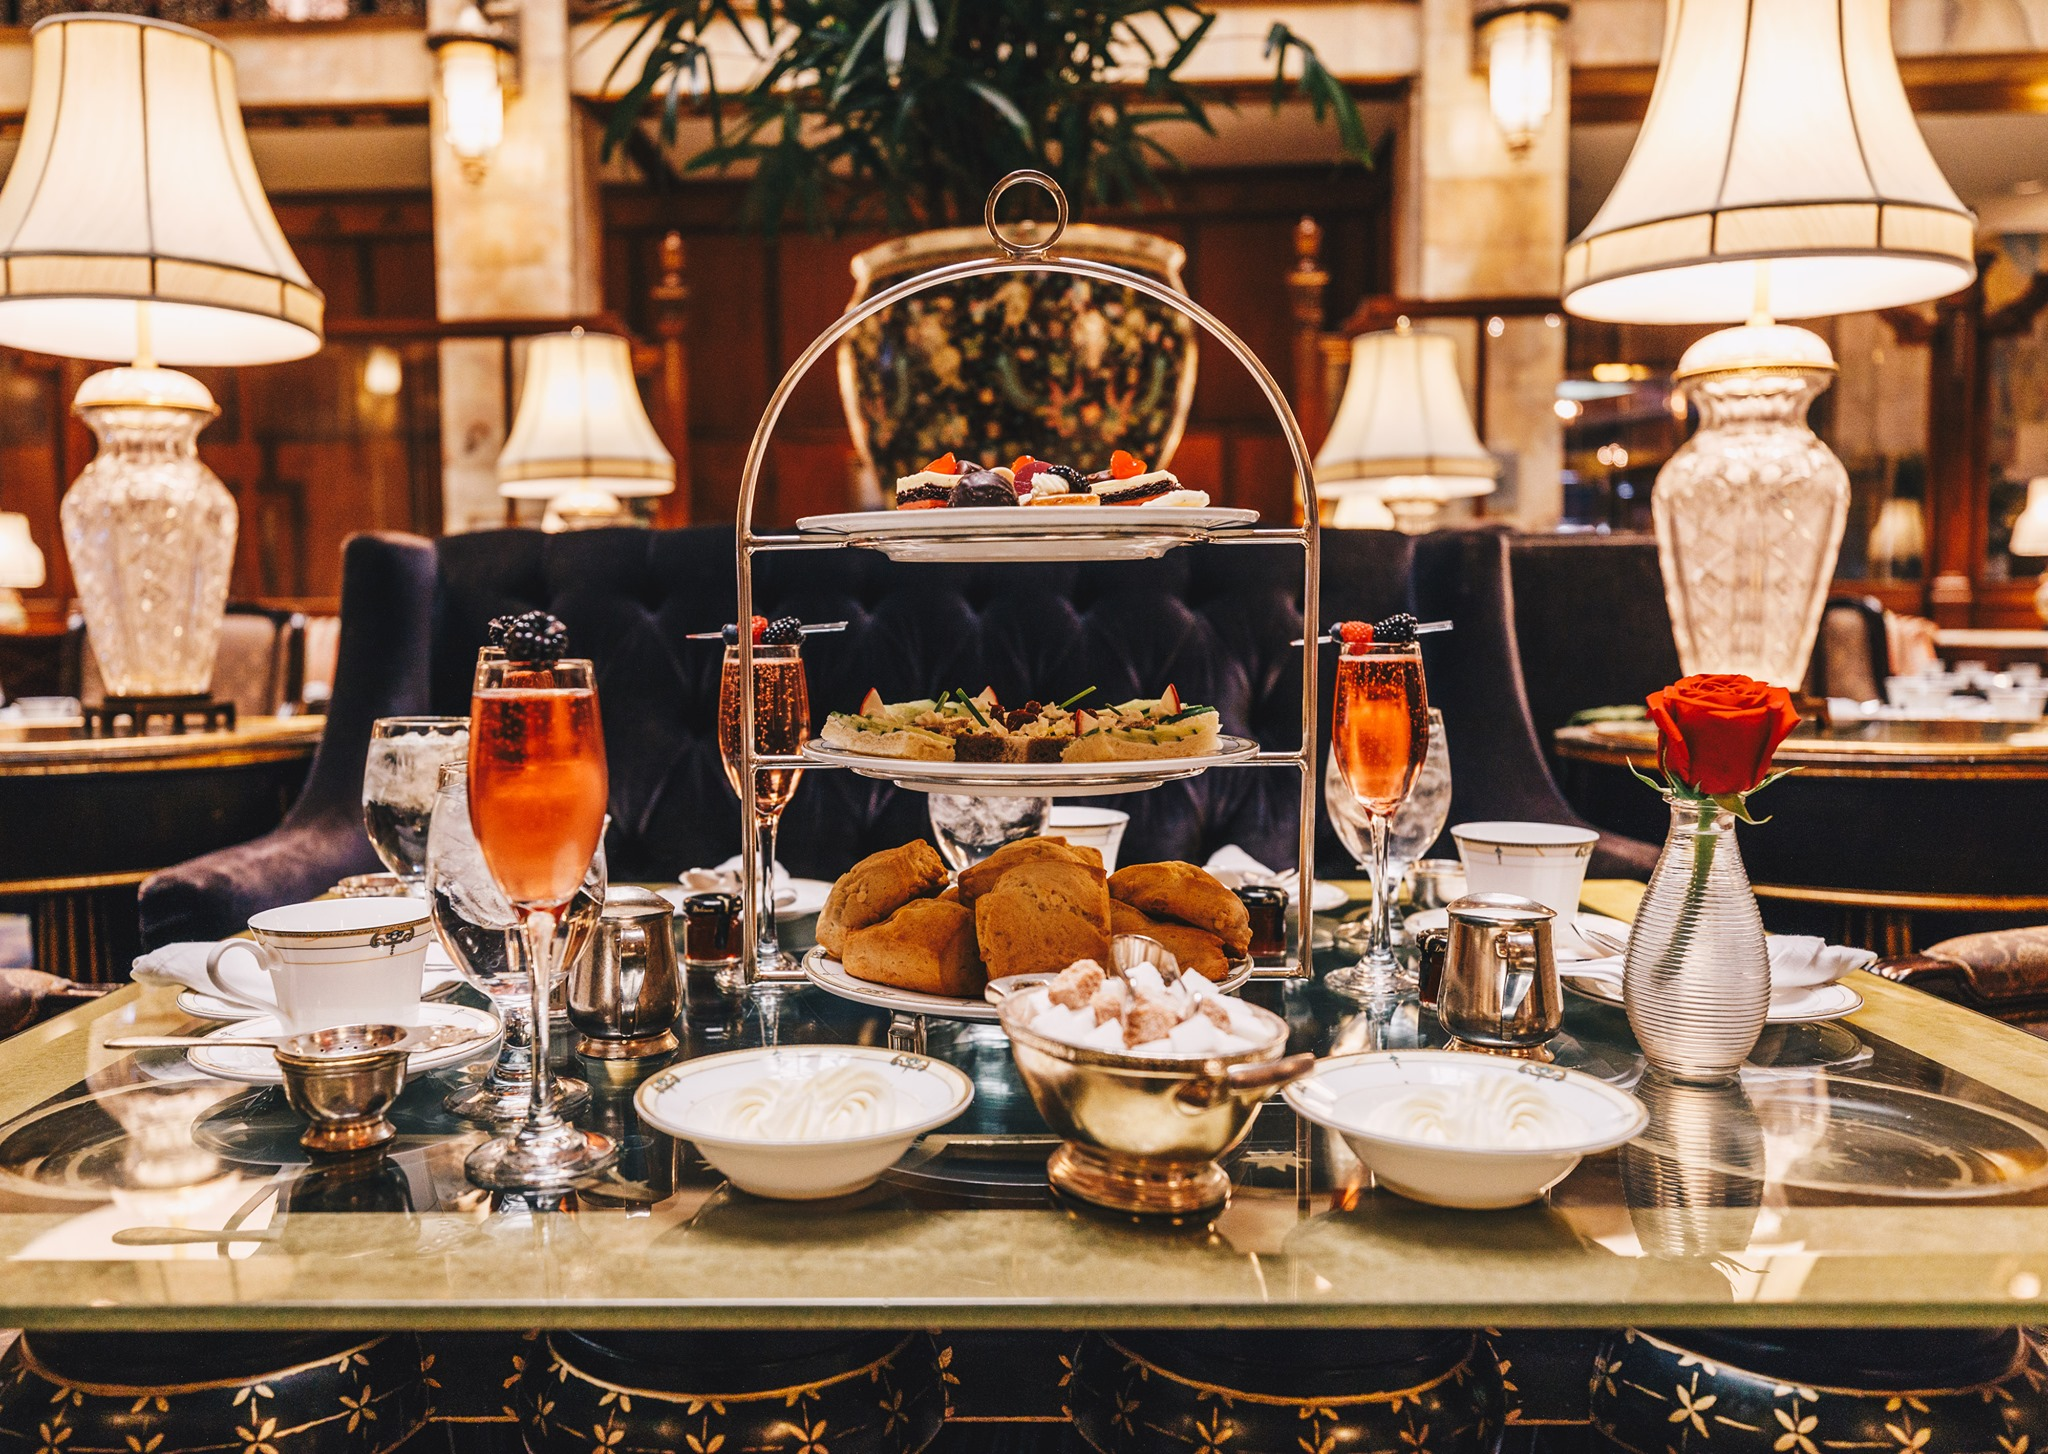 Afternoon Tea at the Brown Palace